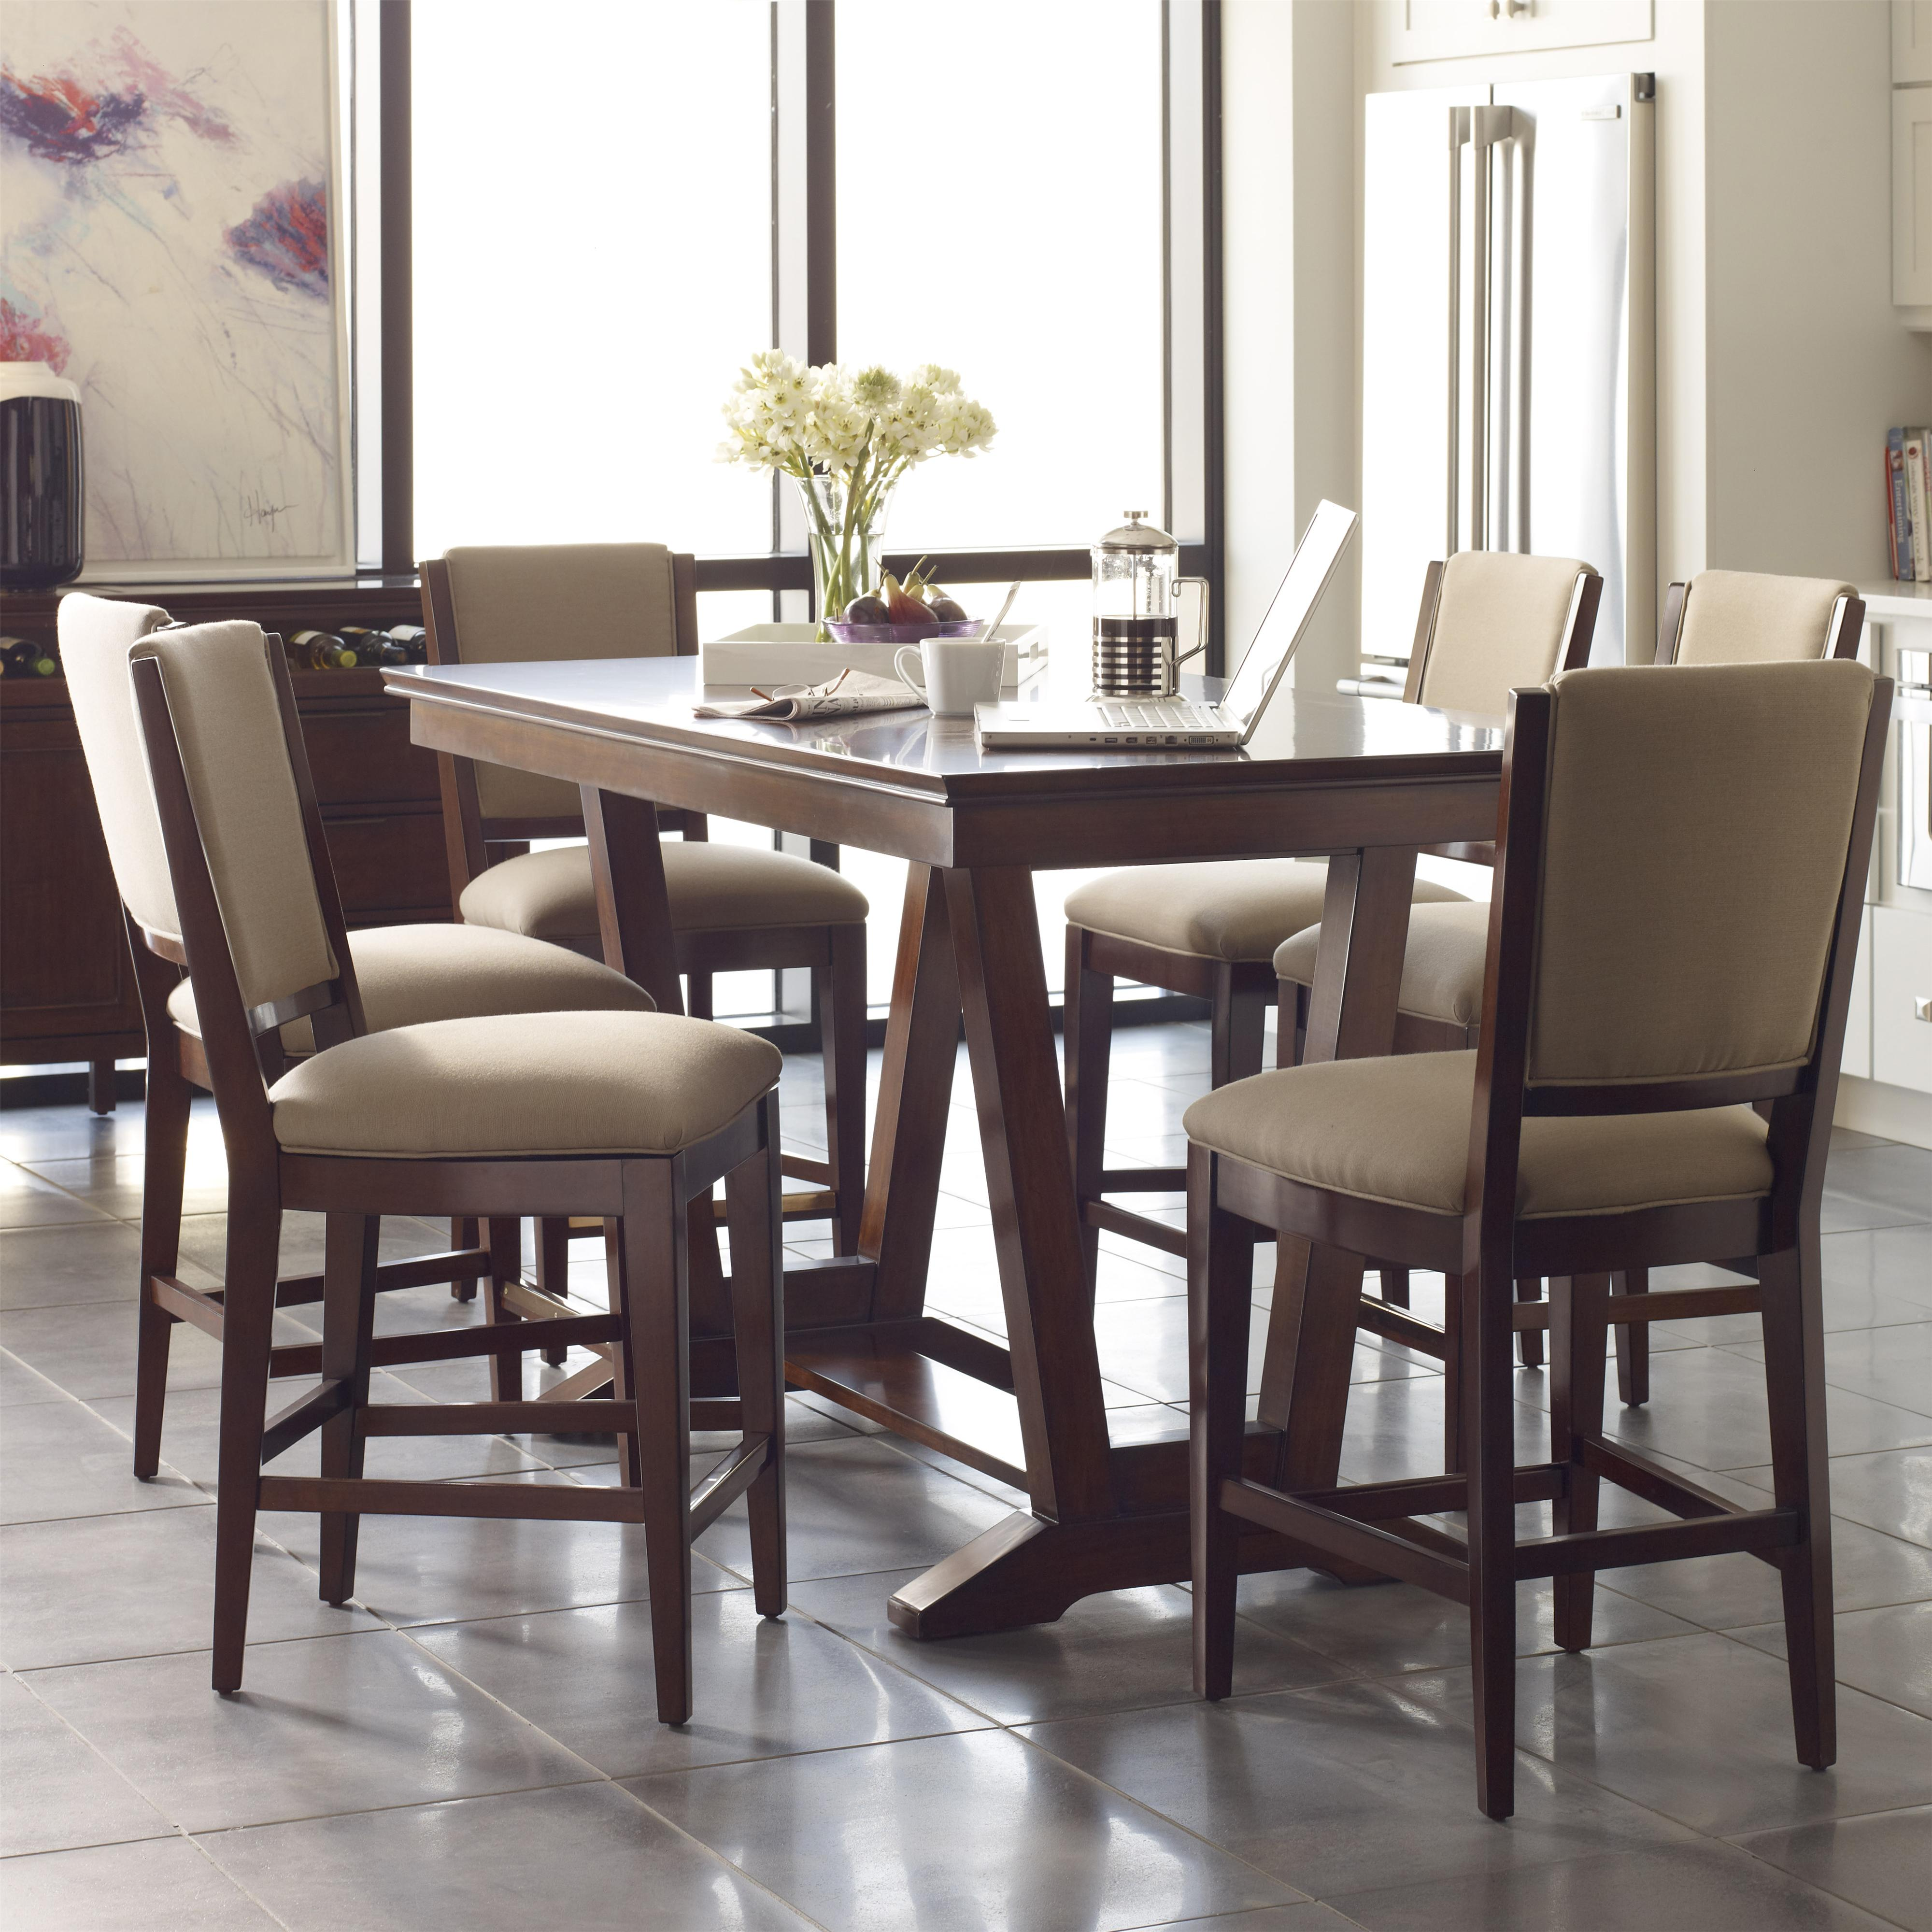 seven piece counter height dining set with upholstered